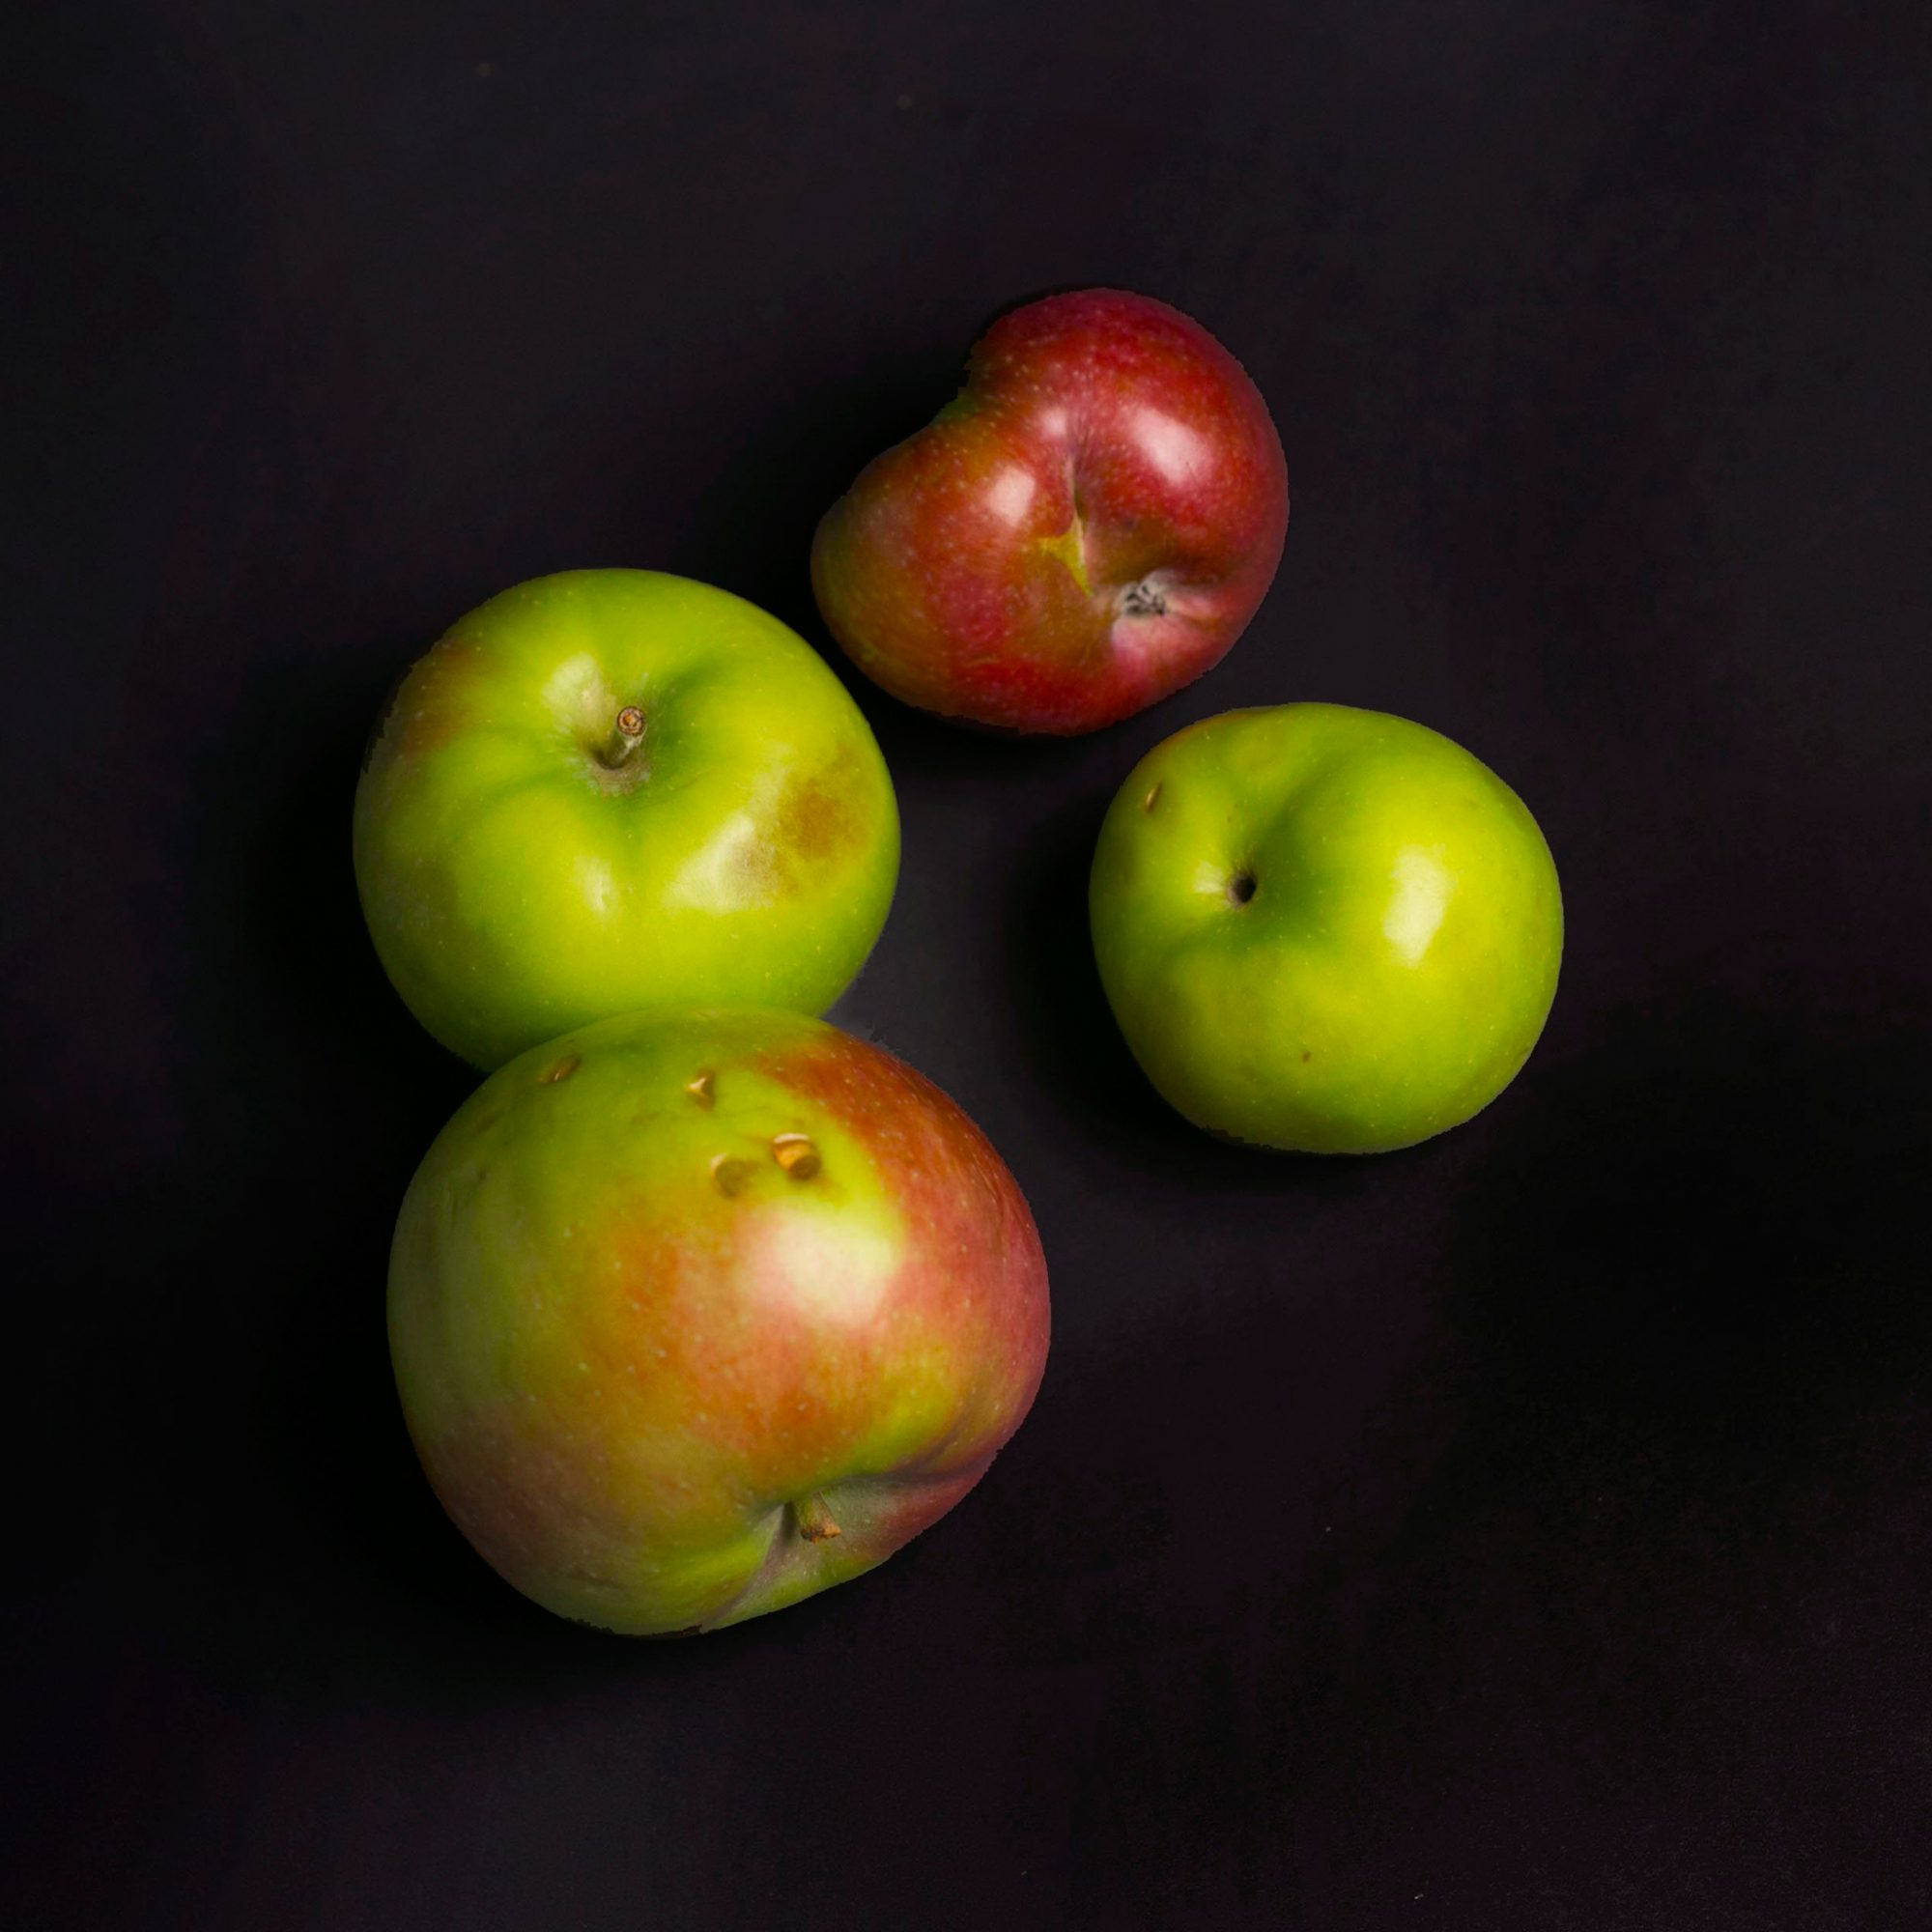 imperfect-apples-fwx